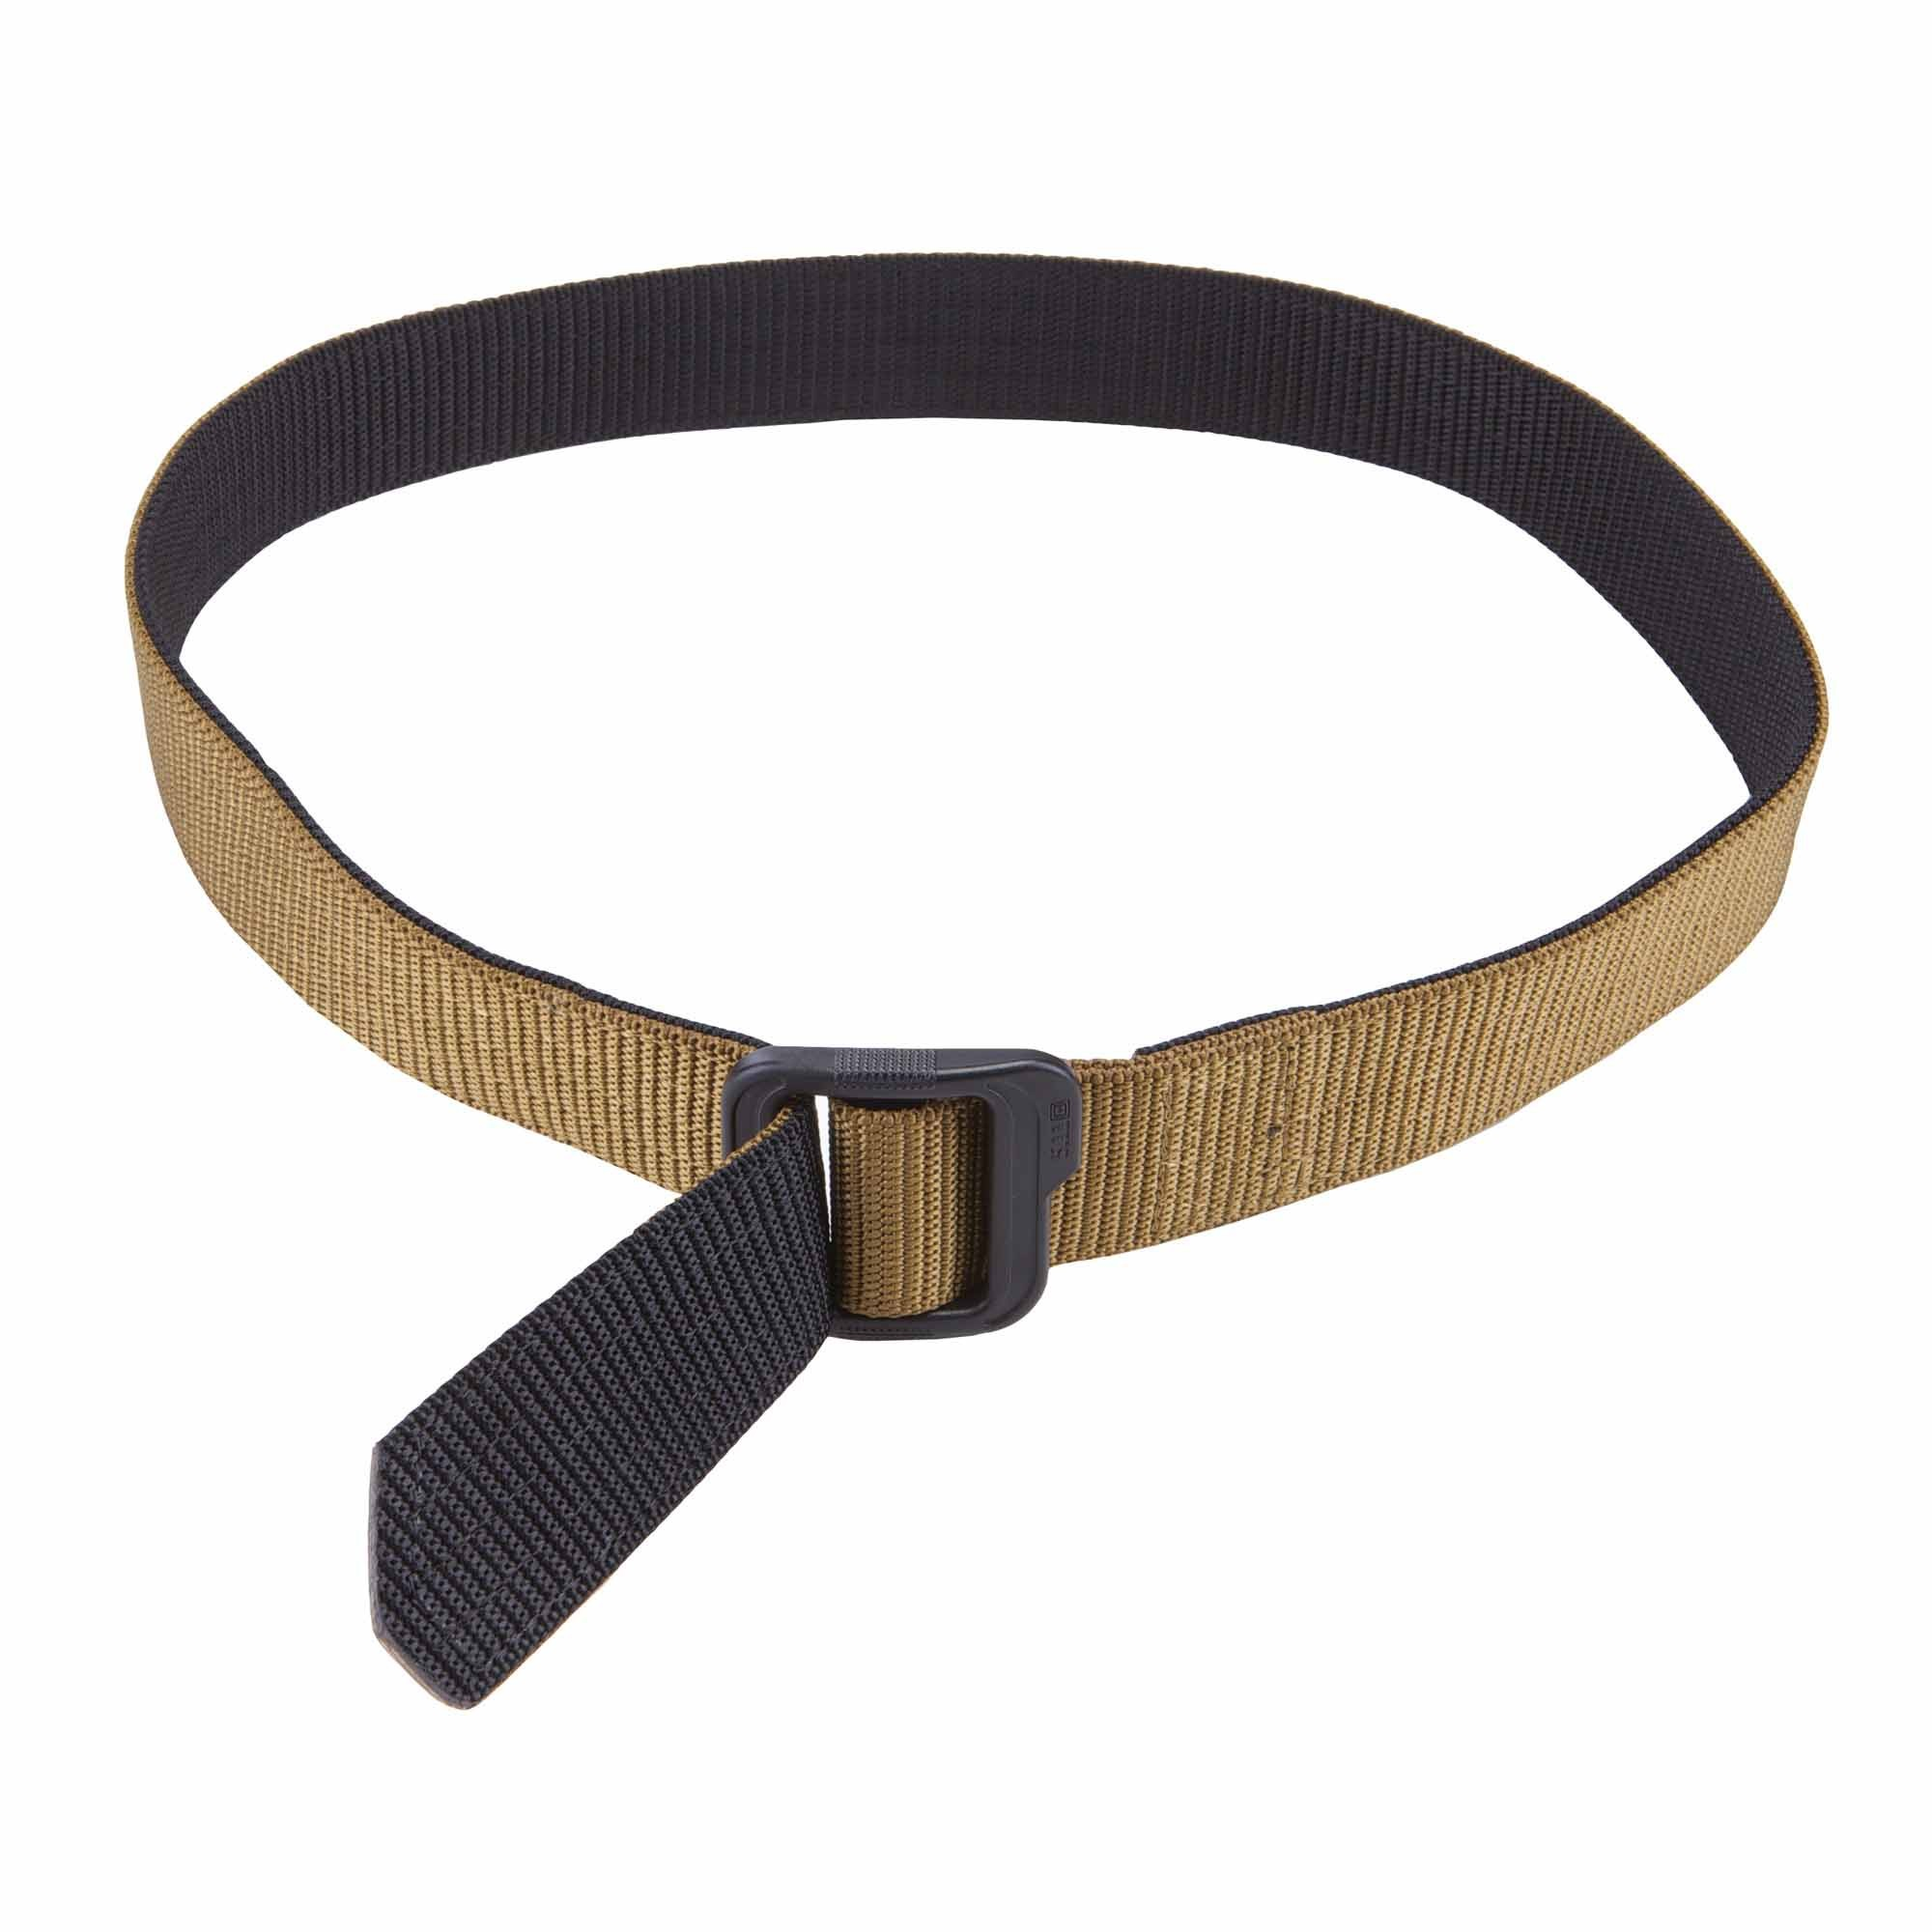 5.11 Double Duty Belt – 1.5″ Wide